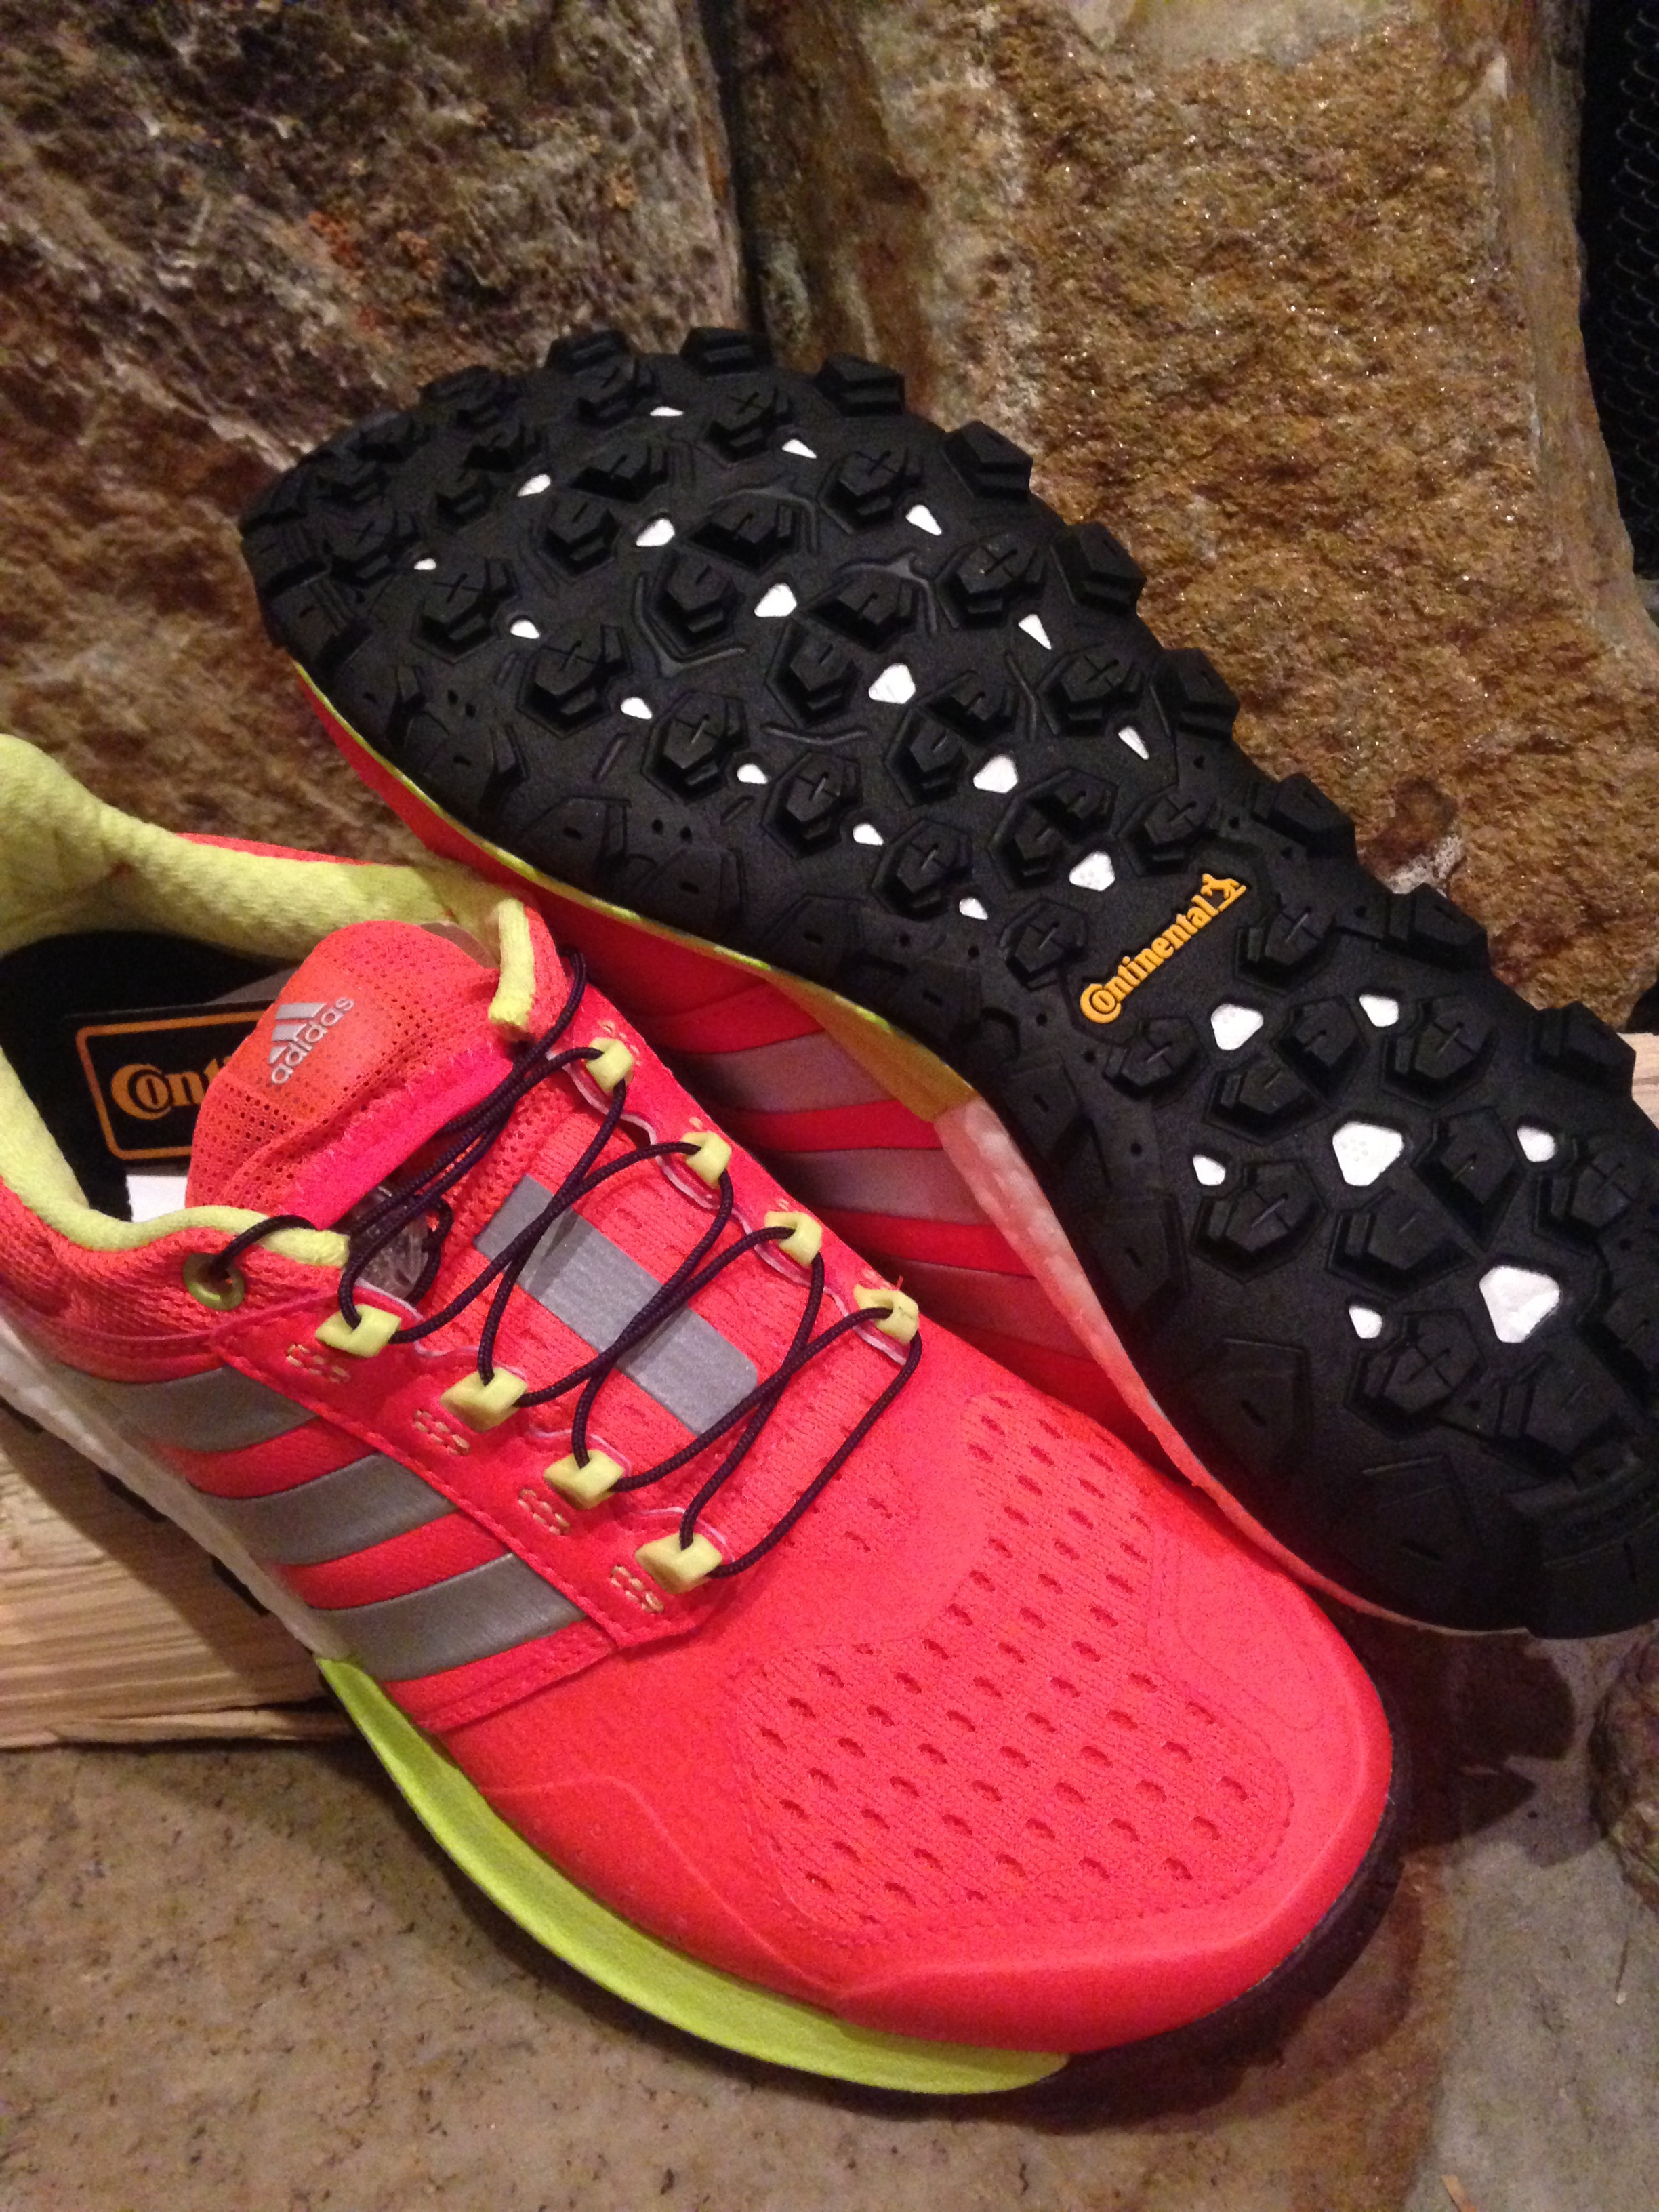 vino pérdida Ingenioso  Adidas Raven Boost - Trail And Ultra RunningTrail And Ultra Running